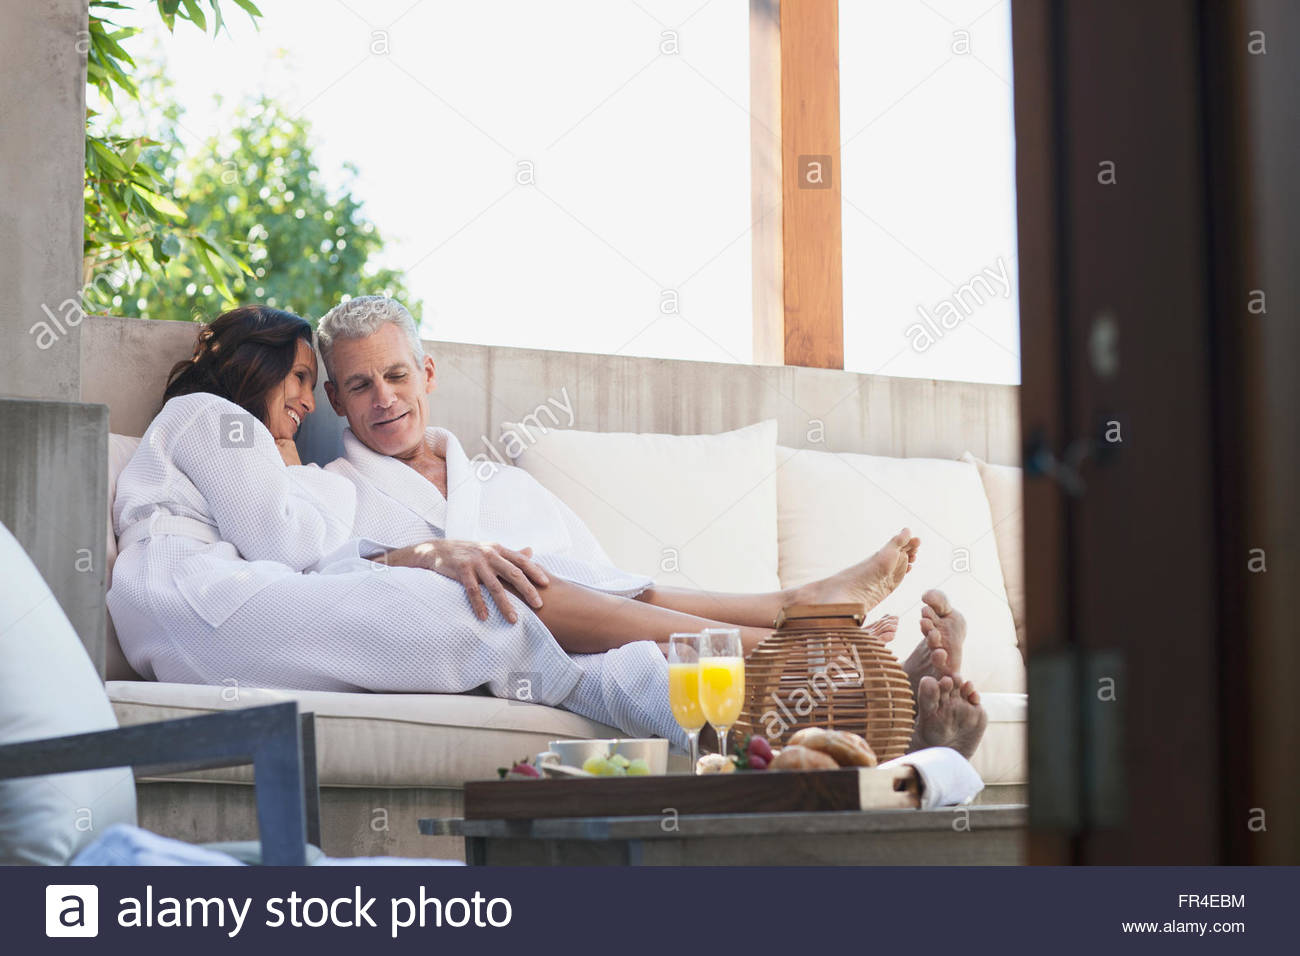 couple in robes talking on outdoor patio - Stock Image